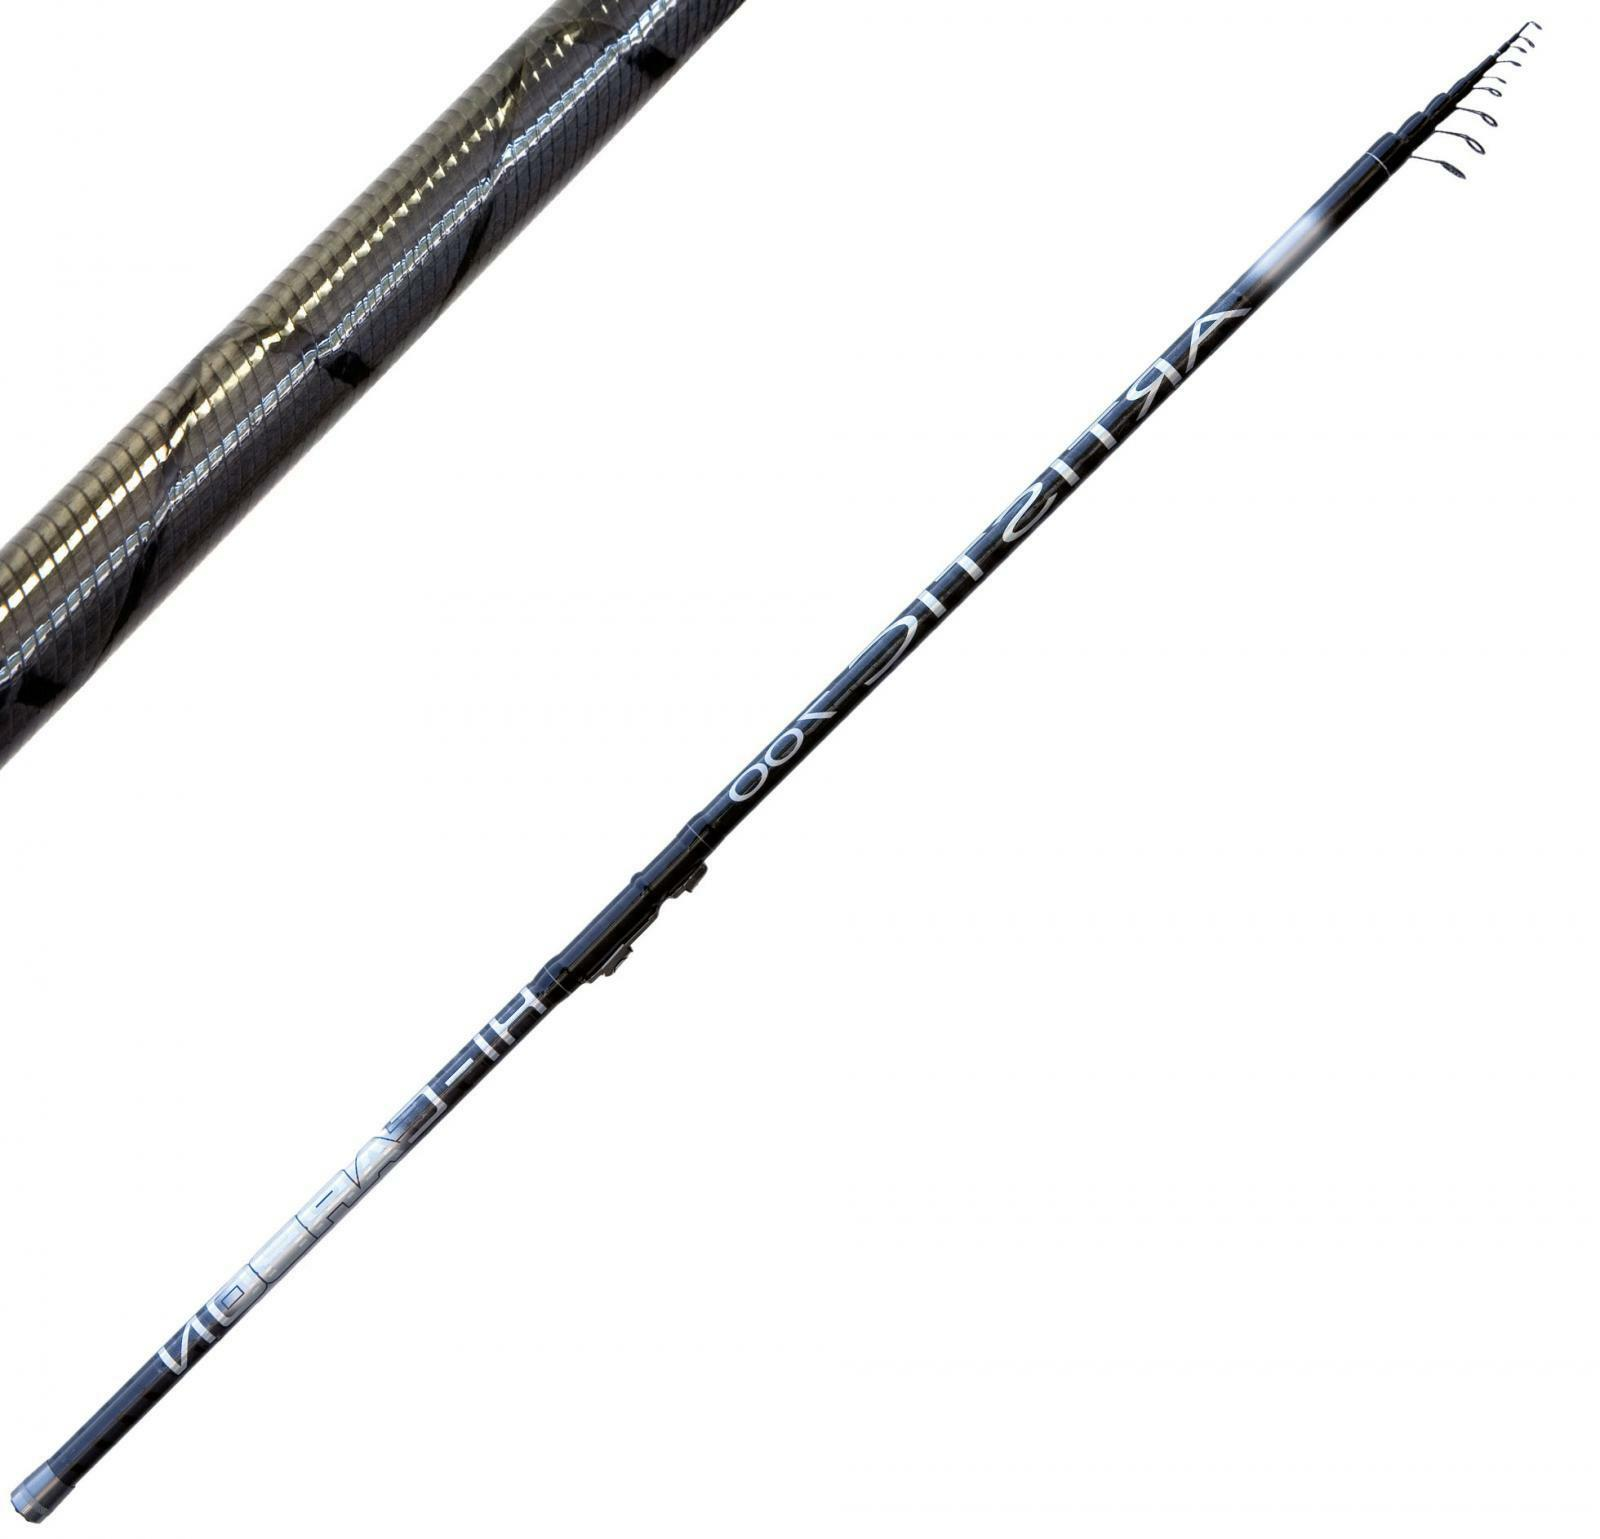 2517805 Bolognese fishing rod Artistic Power Bolo 5 mt Braided carbon